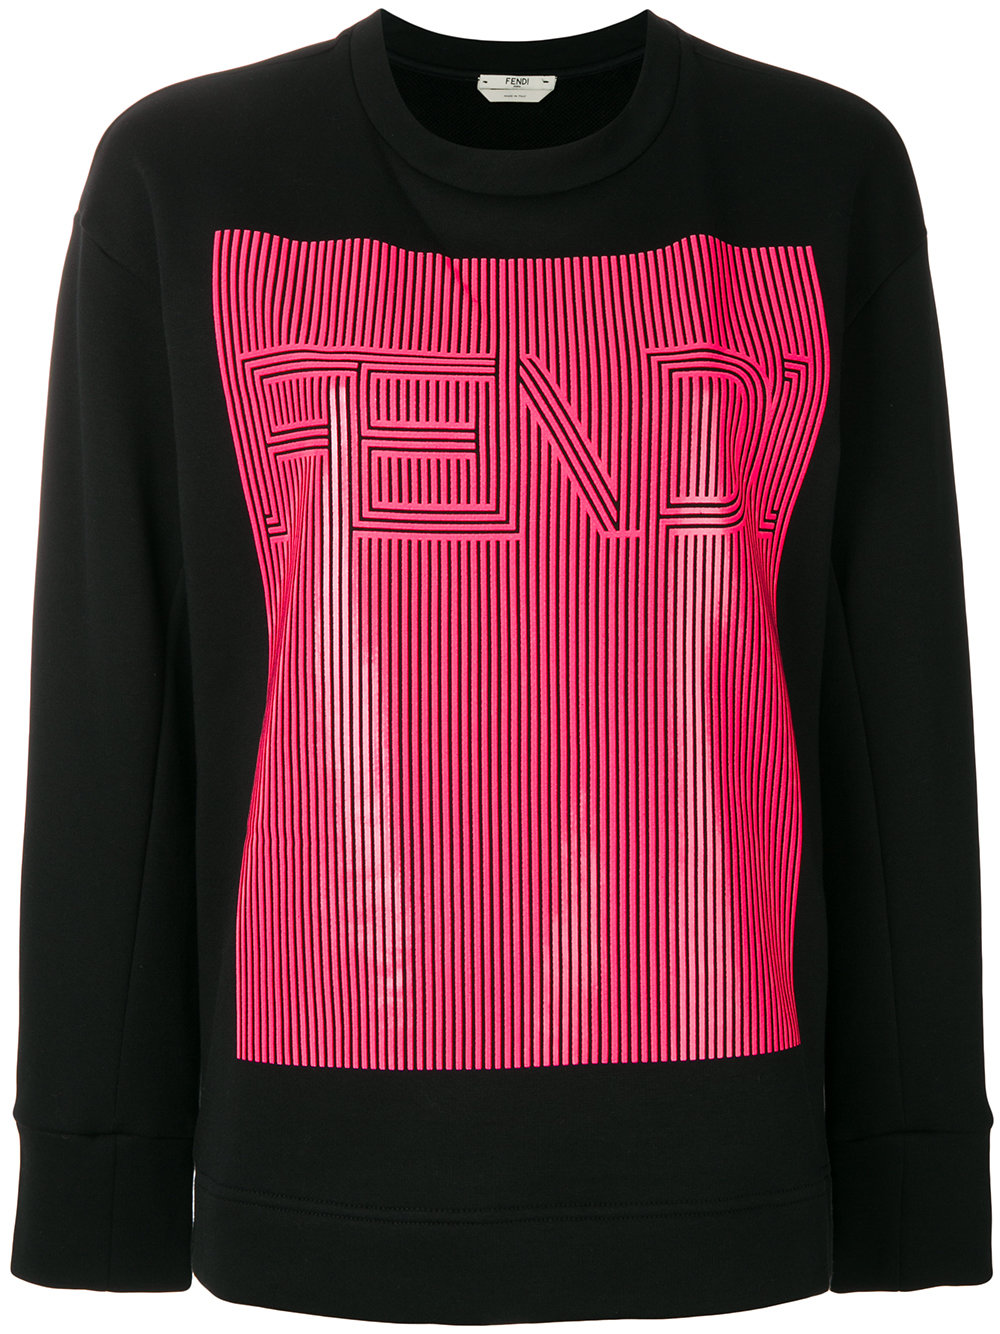 fendi logo sweater